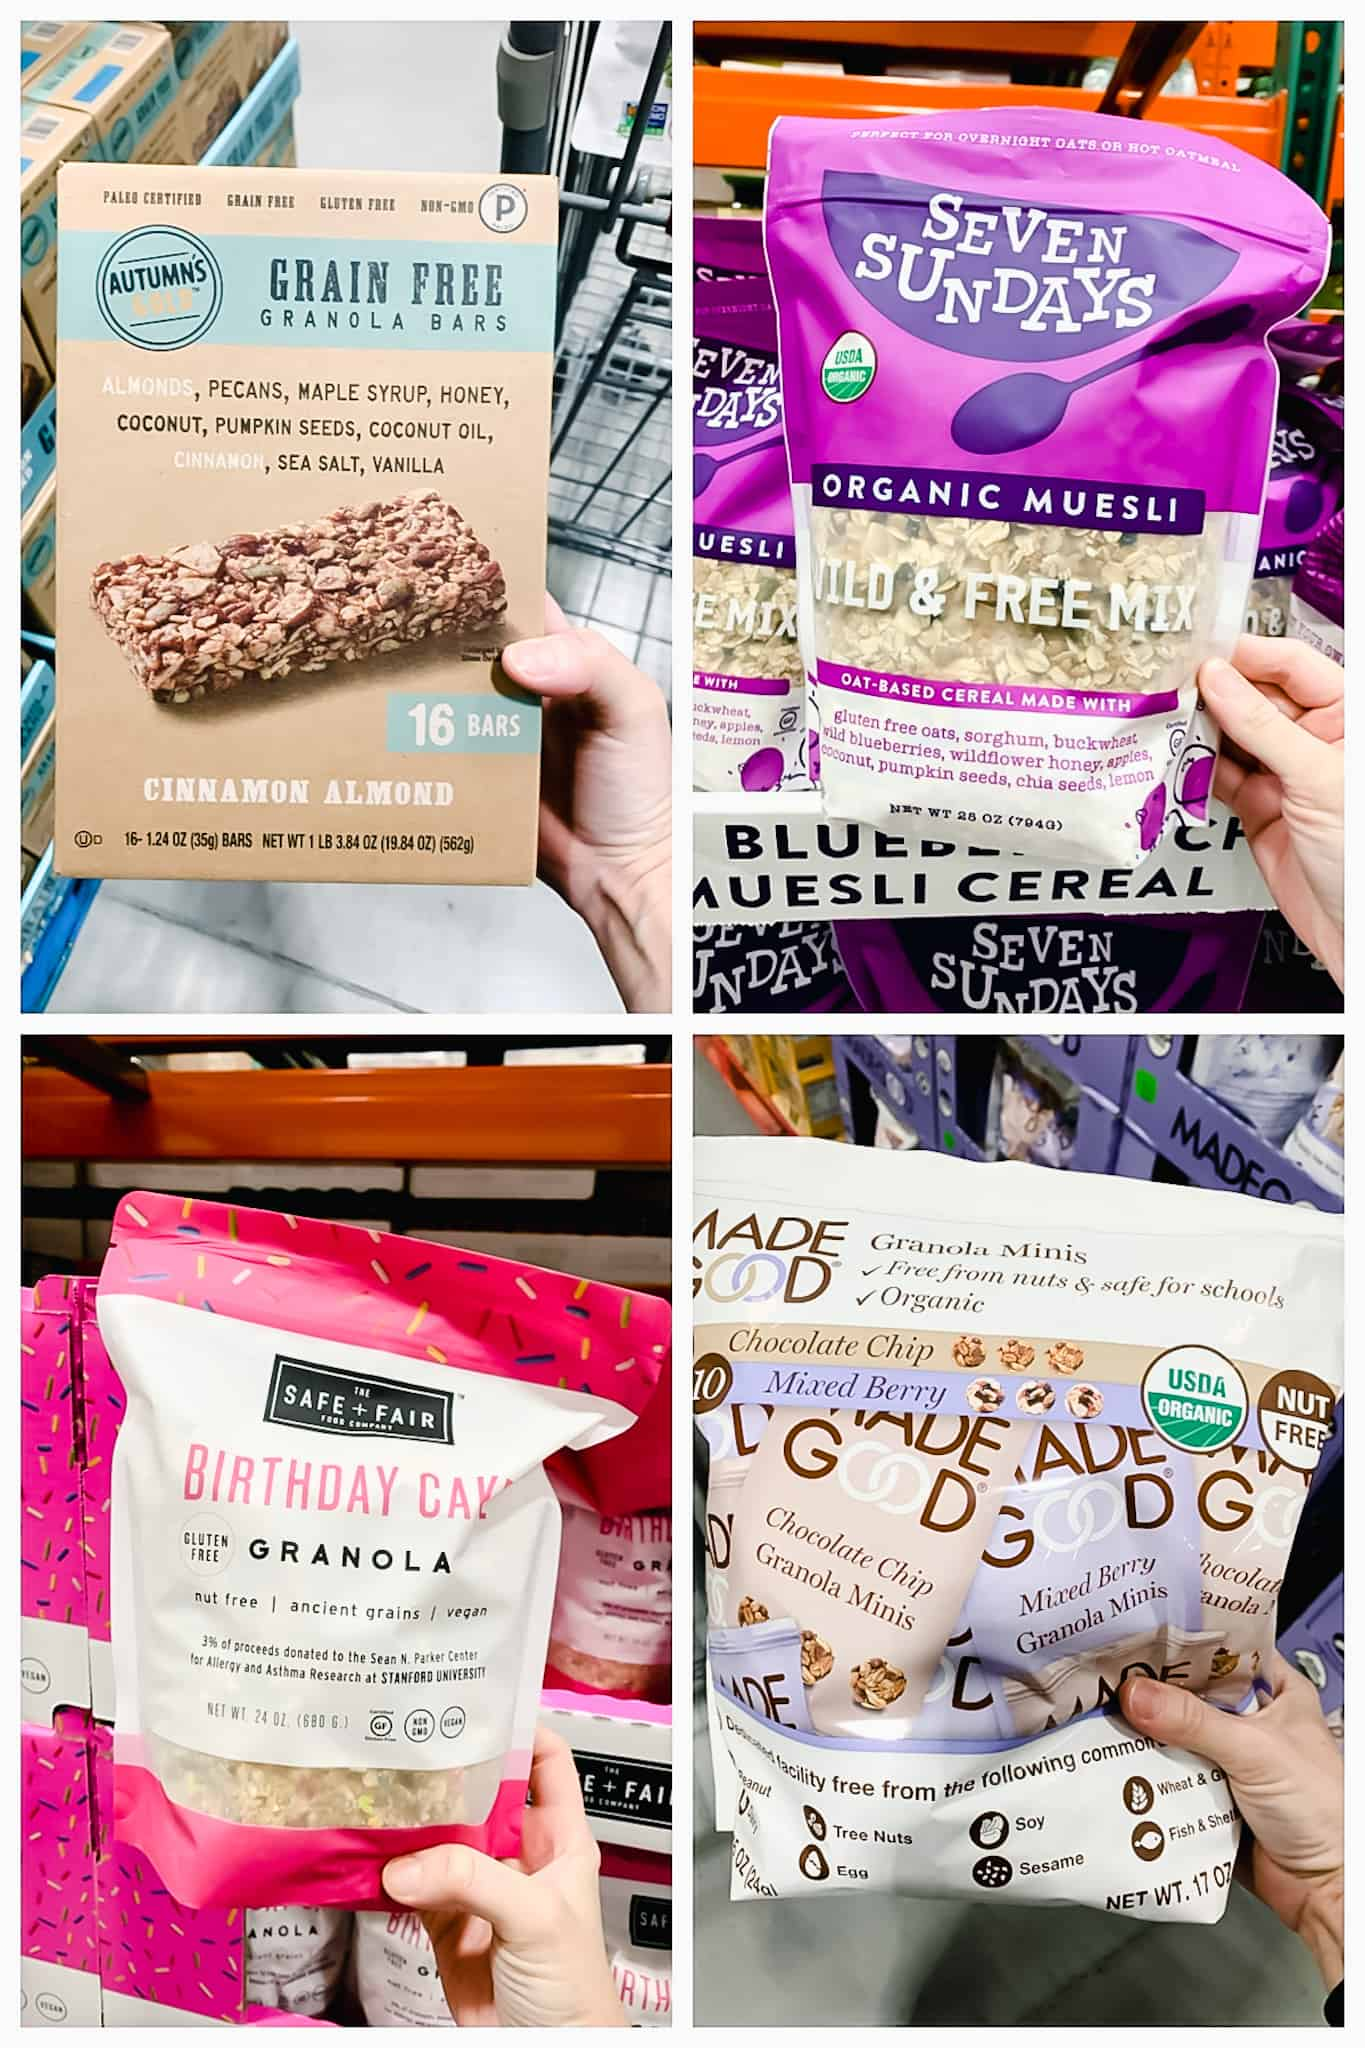 Autumns gold granola bars, seven Sundays muesli, safe and fair granola, made good granola minis held by a hand in Costco.